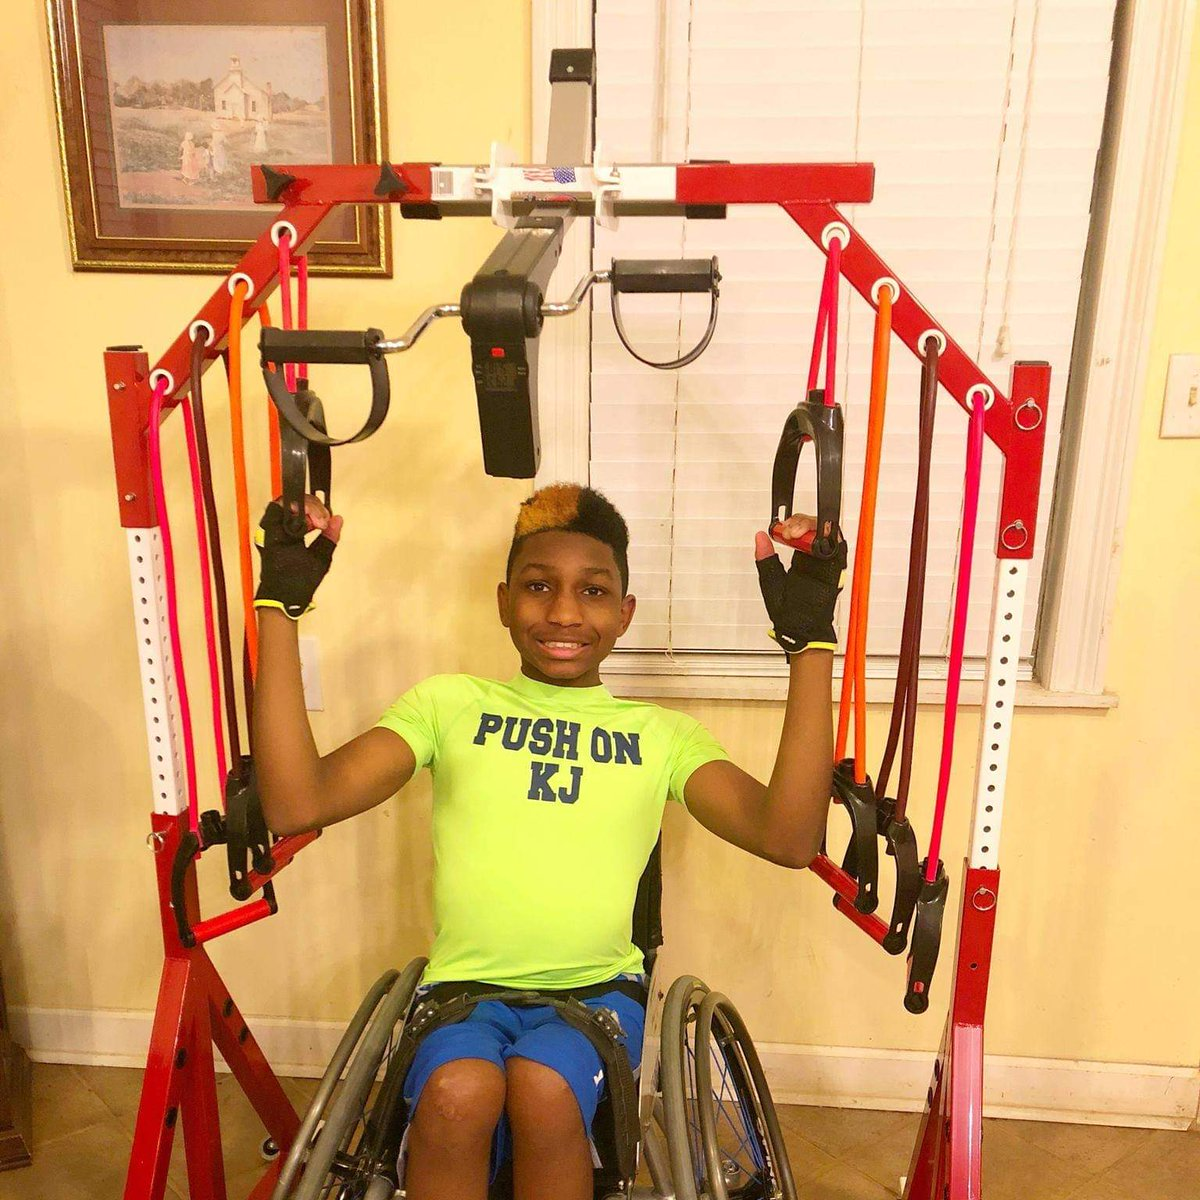 #adaptive #adapted #rehab #therapy #fitness #workout #team #class #solution @AdaptedPE @PlayballCCCBSD @AdaptedPE22 @adapted_project @NCHSadaptedpe @AdaptedPEChanne @dpiAdaptivefit @ATF_Tribe @AdaptSports @NWBA @CAFoundation   BULK DISCOUNTS THIS MONTH!